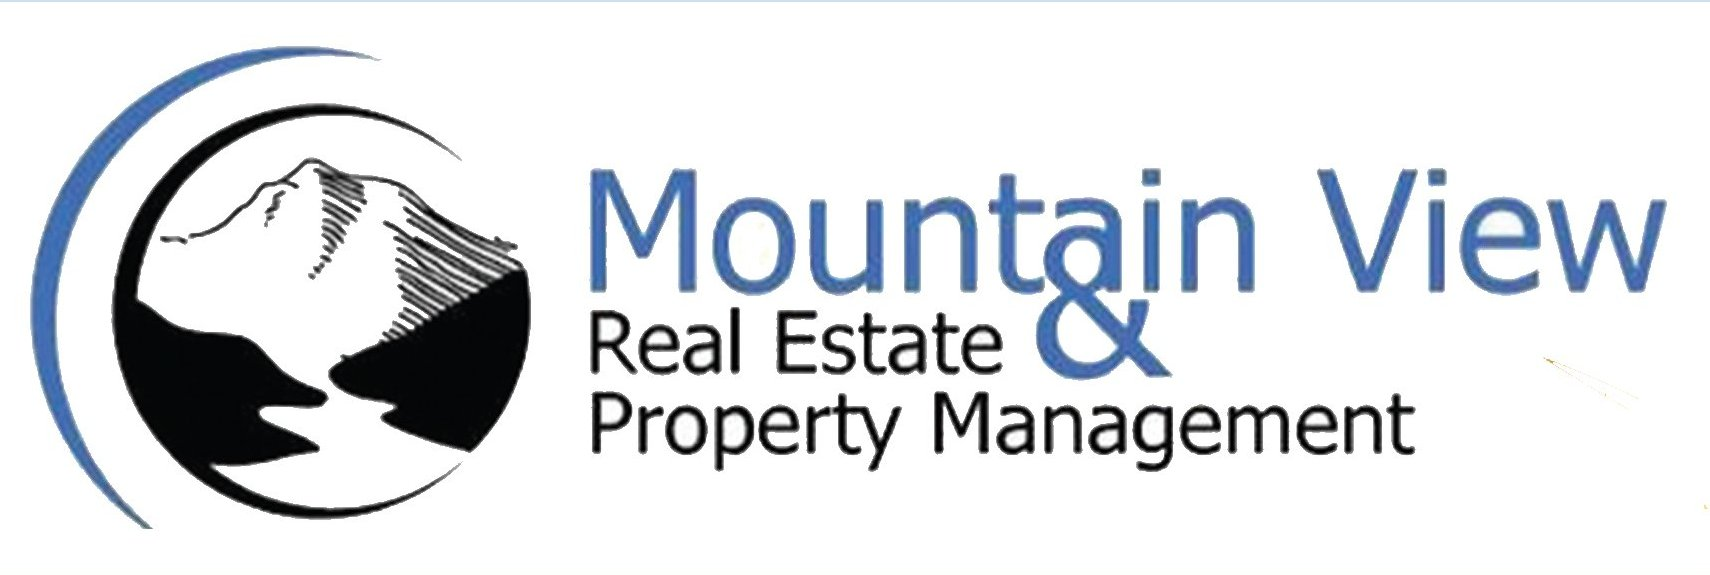 Mountain View Real Estate & PM logo